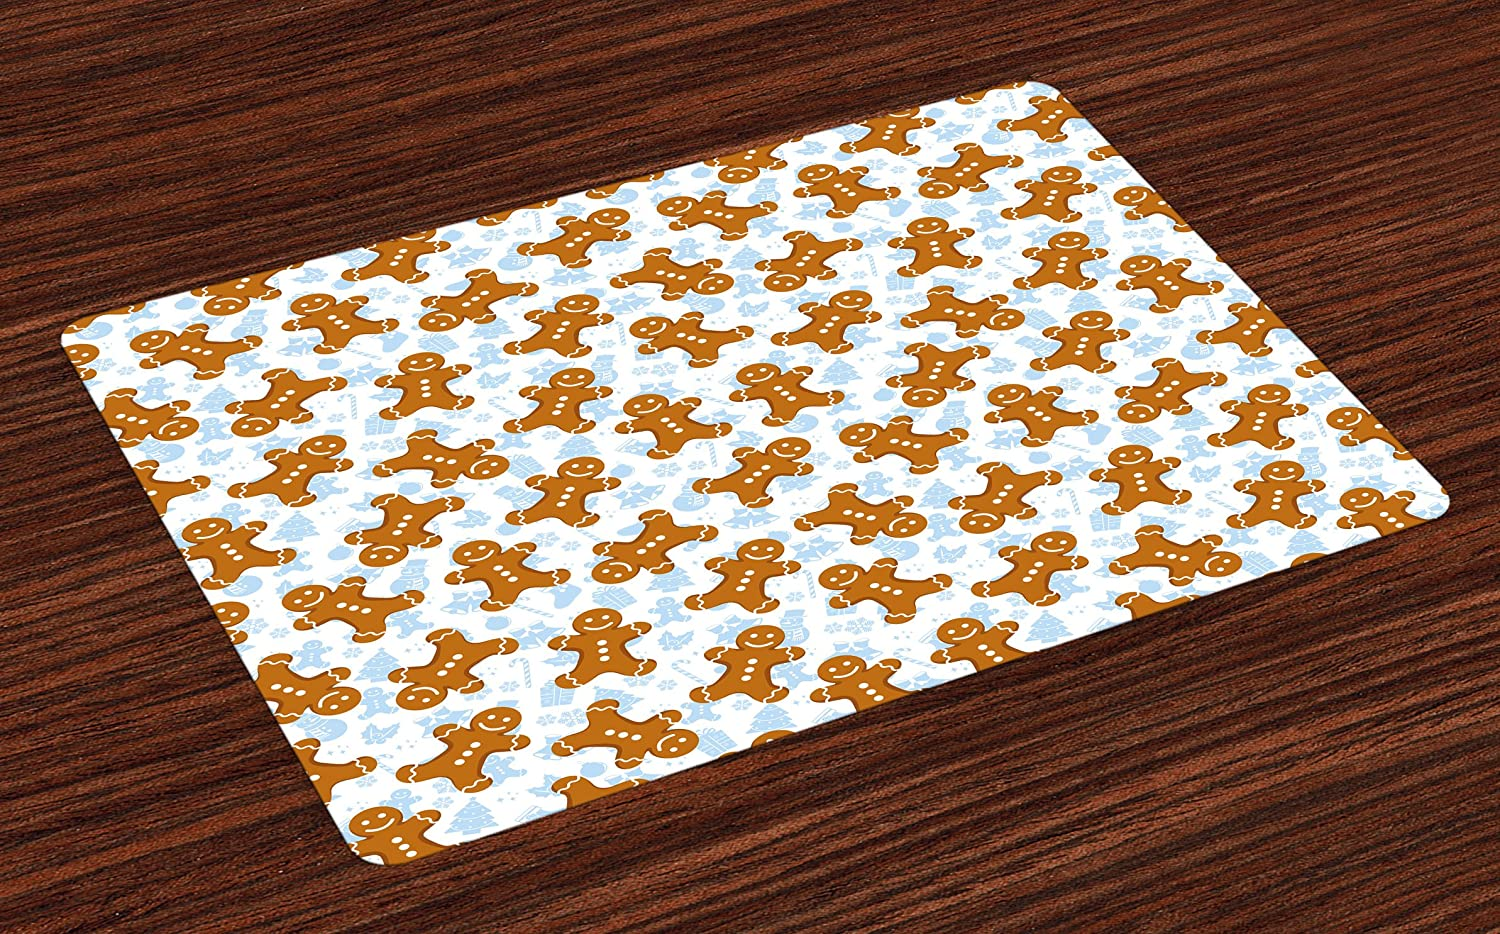 Ambesonne Gingerbread Man Place Mats Set of 4, Traditional Christmas Icons Cookie Pattern Festive Tile, Washable Fabric Placemats for Dining Room Kitchen Table Decor, Pale Caramel Baby Blue White